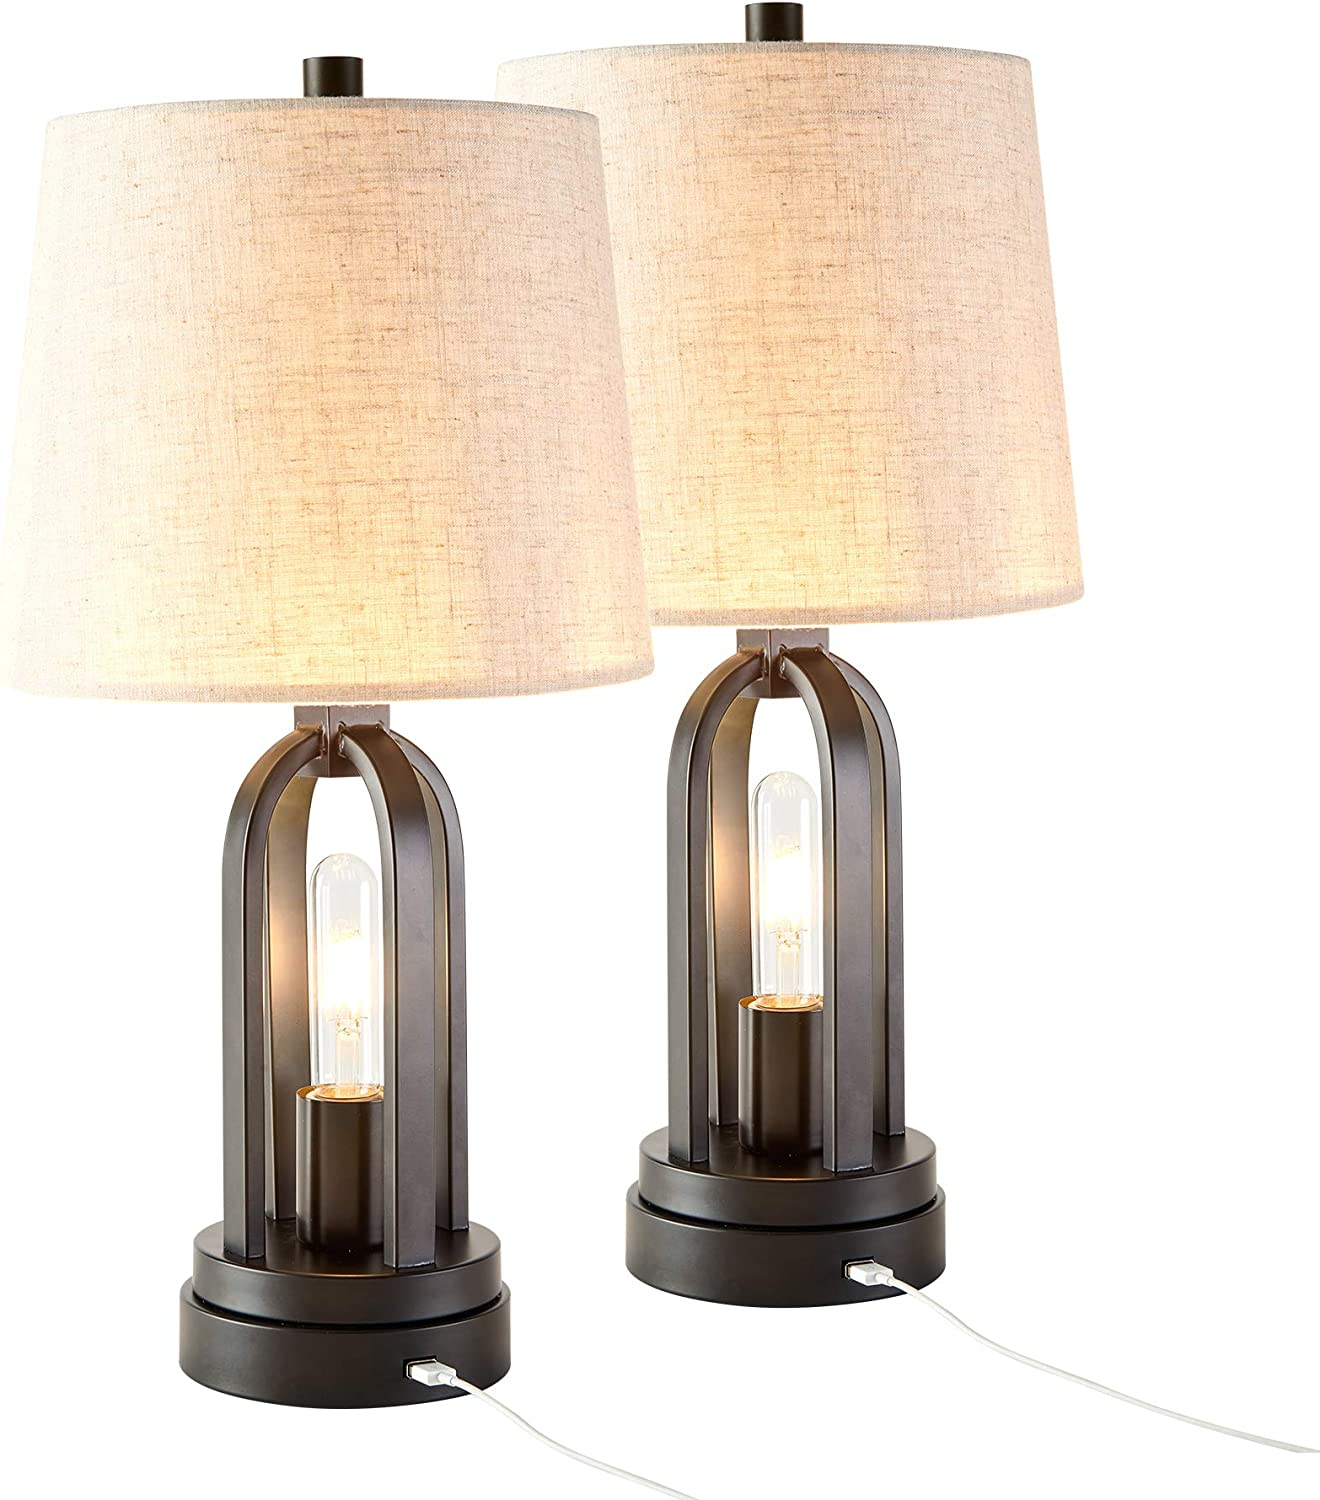 CO-Z Farmhouse Table Lamps Set of 2 with USB Port, Industrial Table Lamps with LED Edison Nightlight, Rustic Table Lamps Black for Living Room, Bedroom, Nightstand.